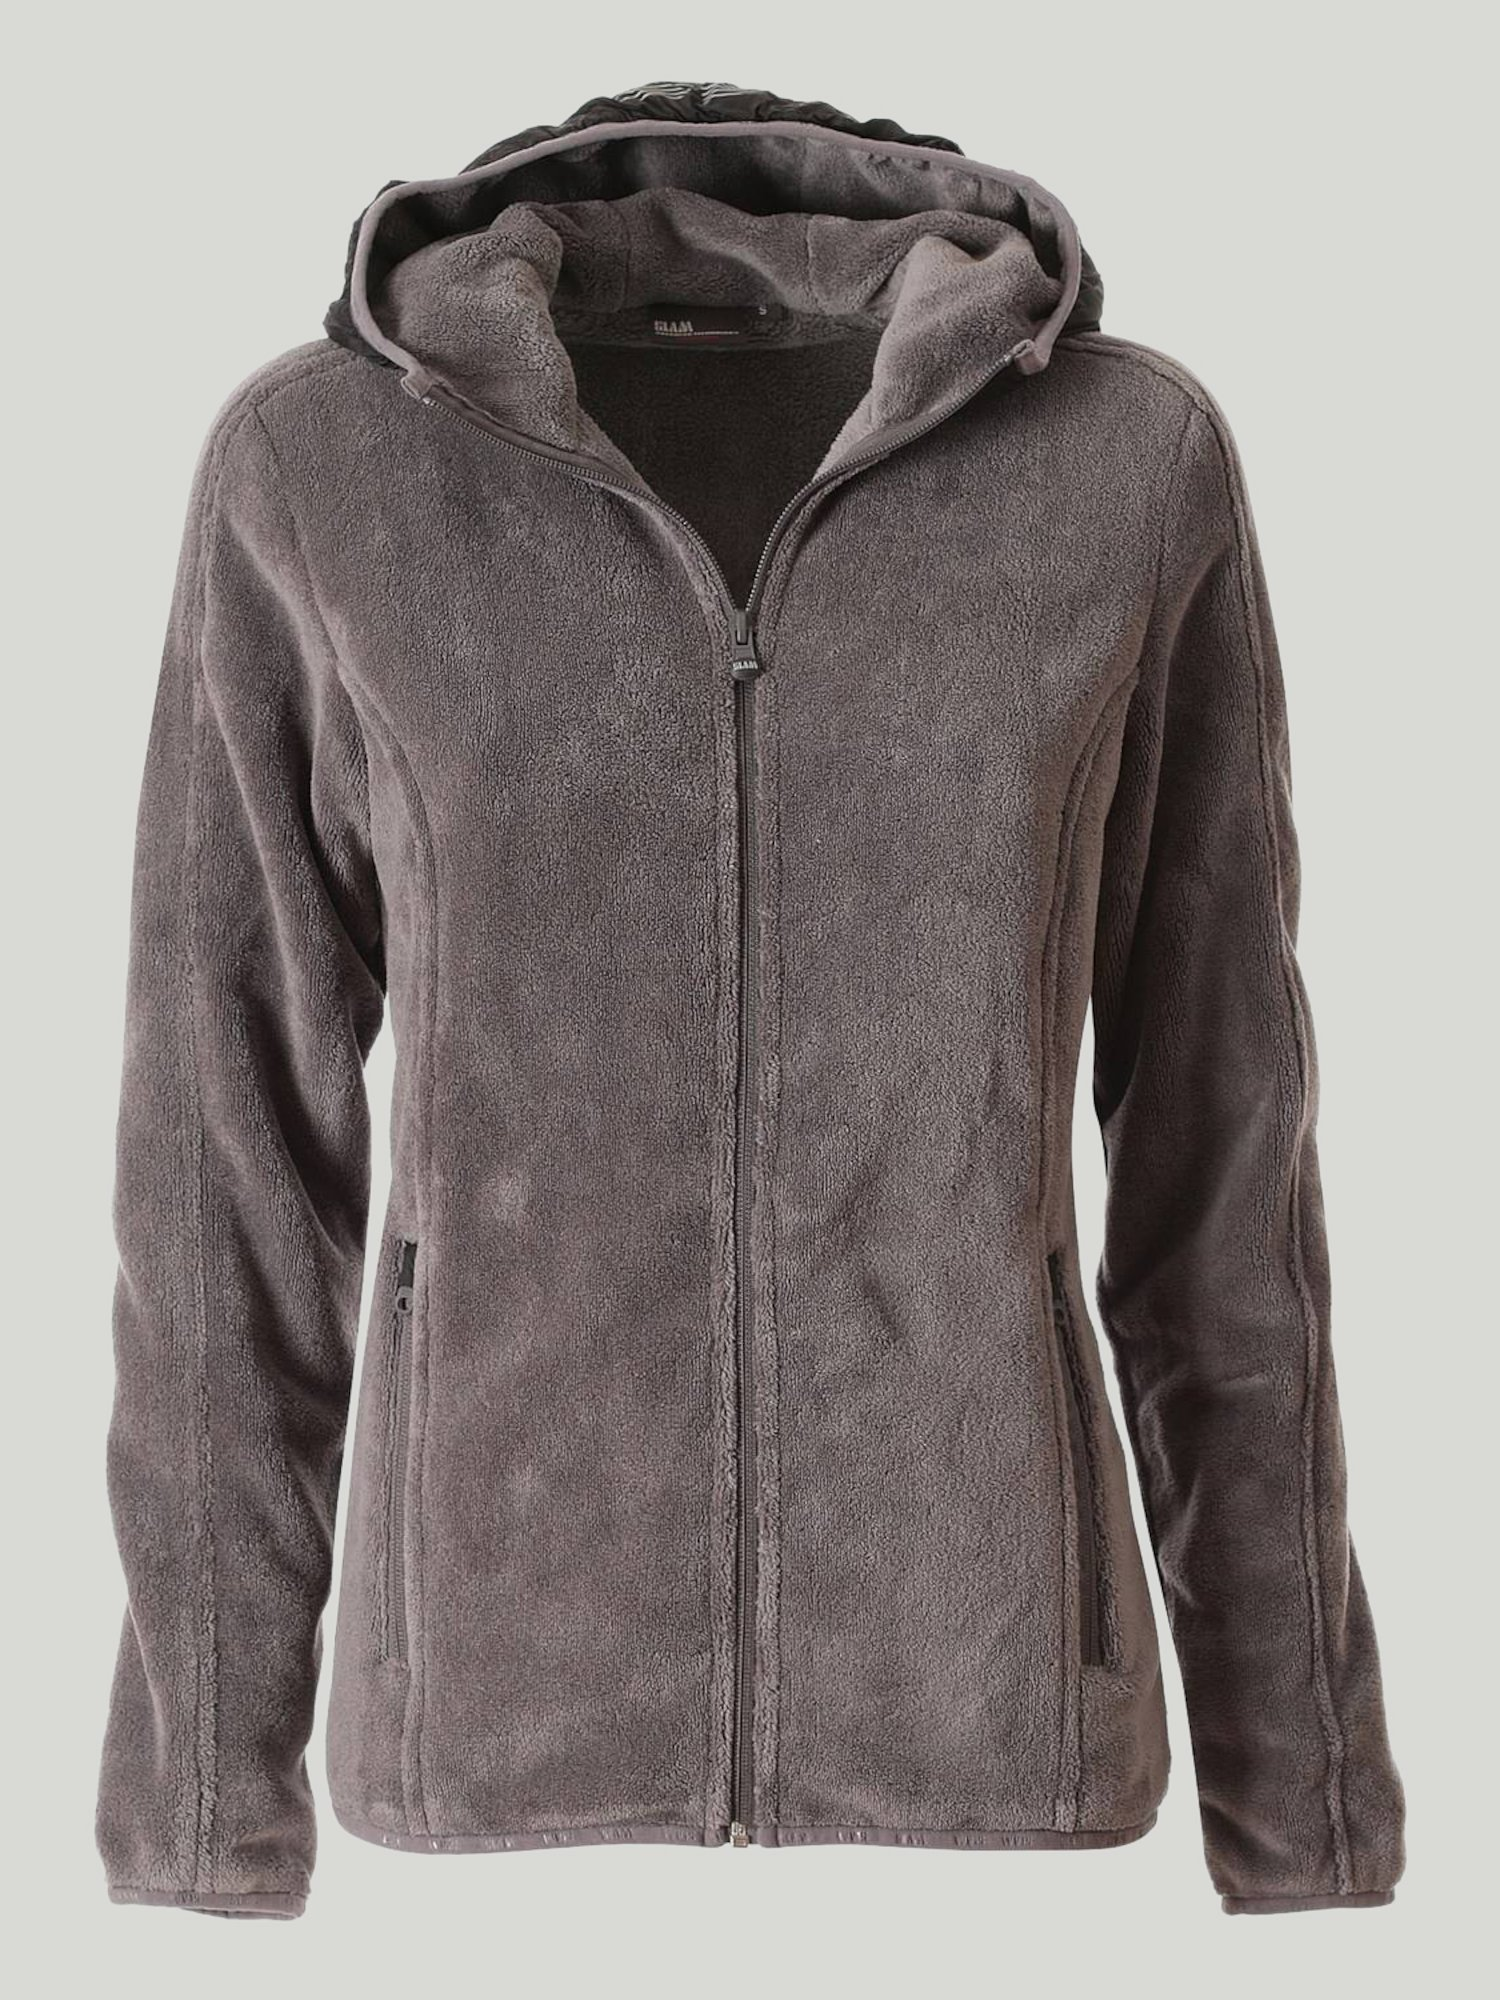 FLEECE ALIZIA - Anthracite